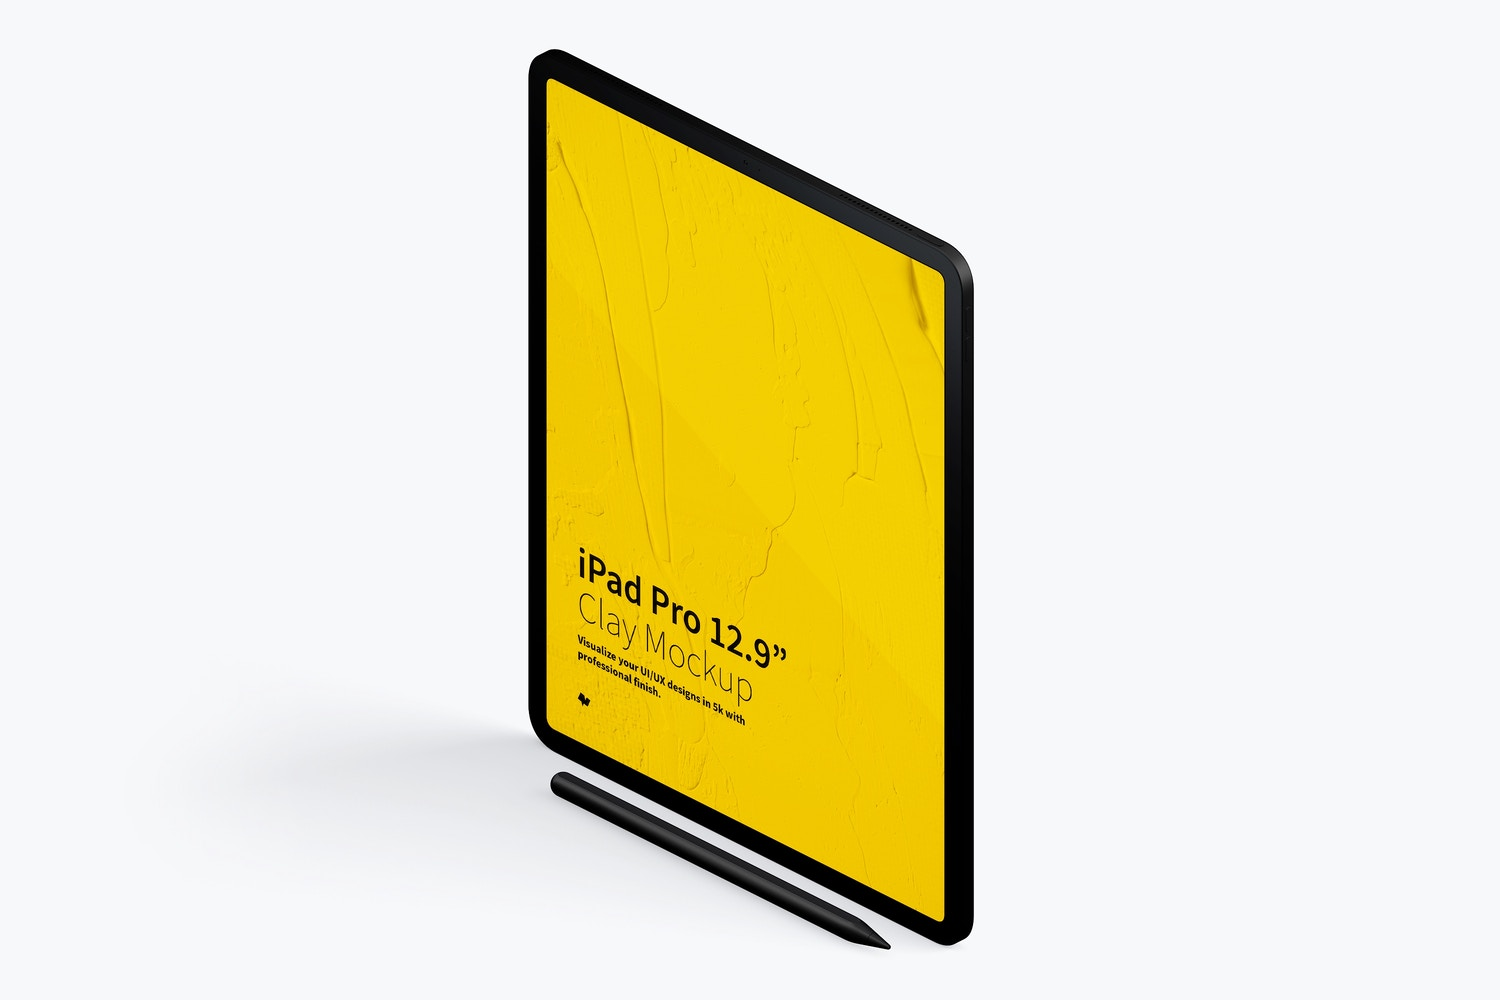 "Clay iPad Pro 12.9"" Mockup, Isometric Left View 02 (4) by Original Mockups on Original Mockups"